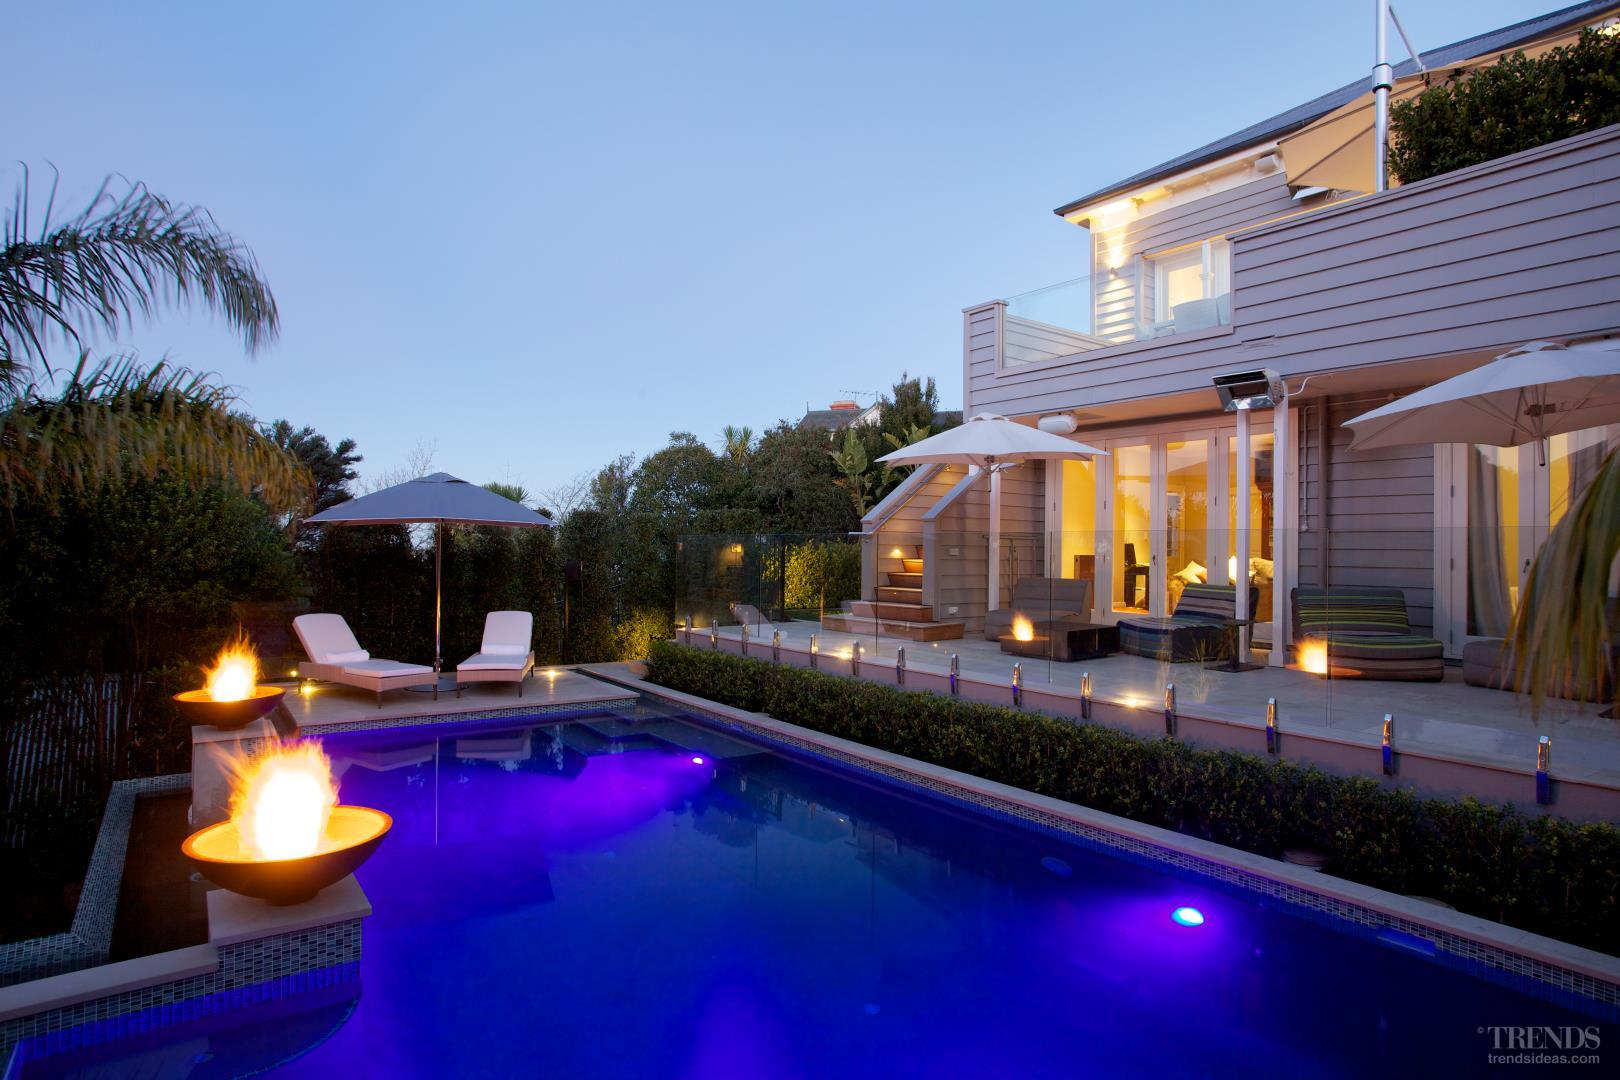 Terraced Backyard Pool : Backyard renovation with new pool, terraced garden and tropical